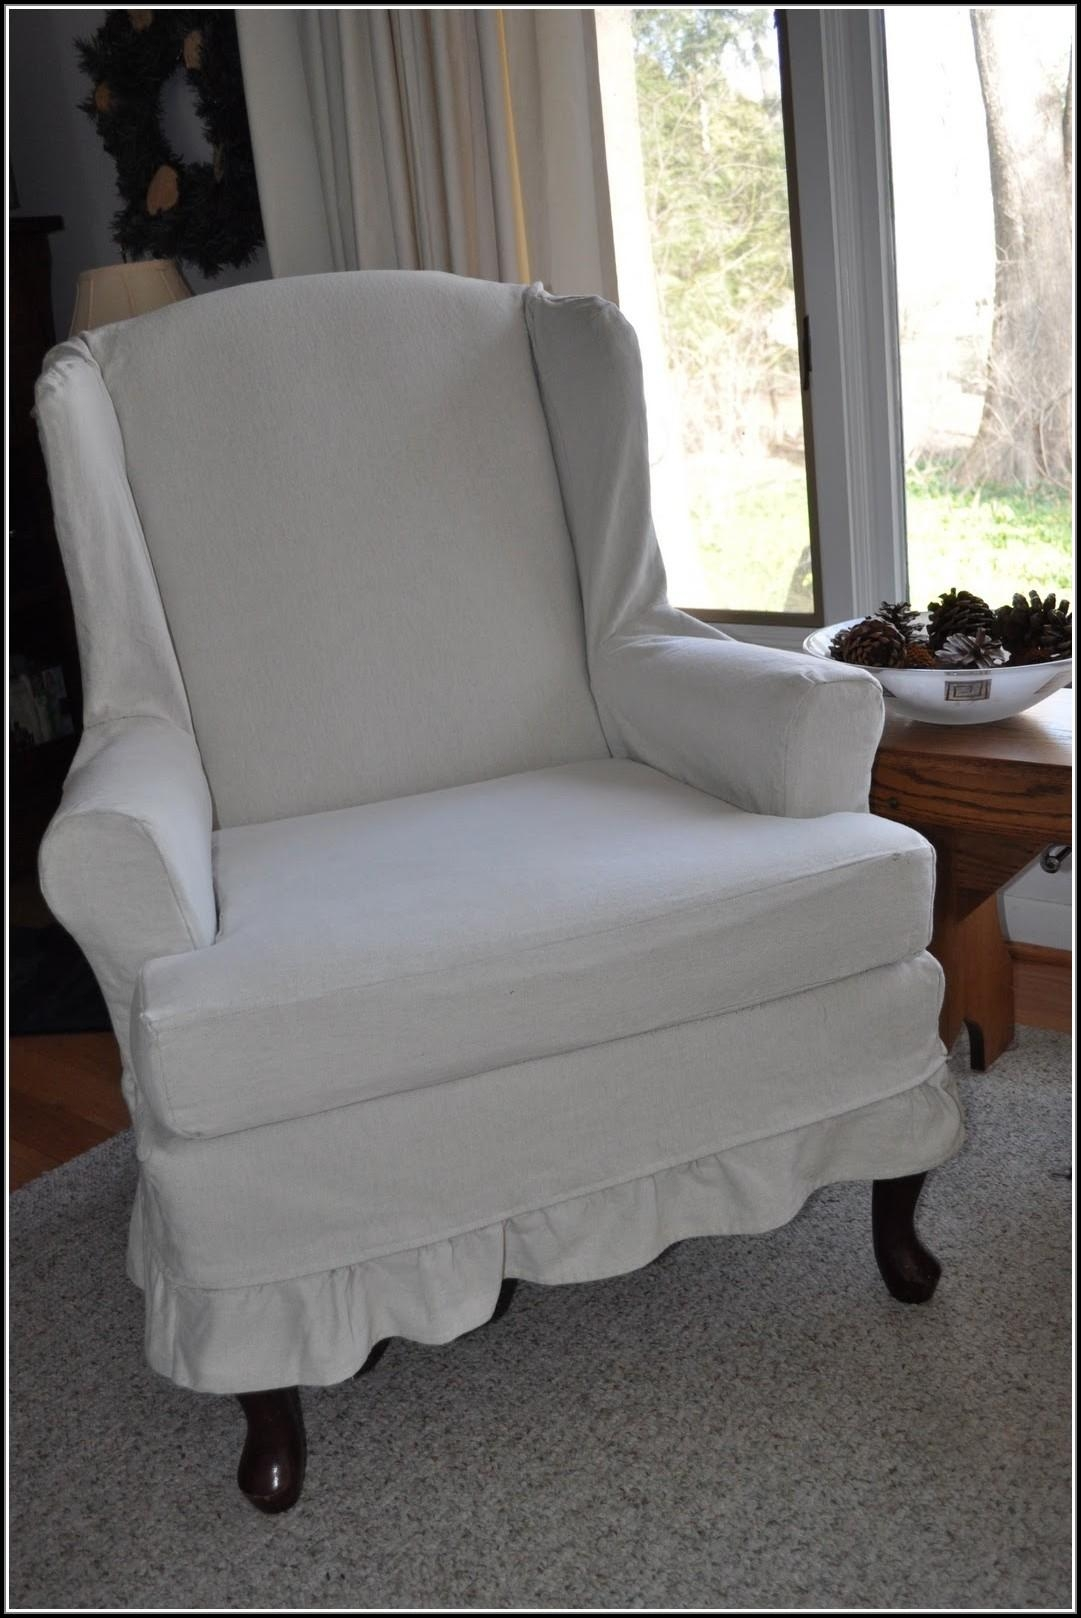 pottery barn anywhere chair cover shrunk colorful side chairs 2017 latest slipcovers sofa ideas